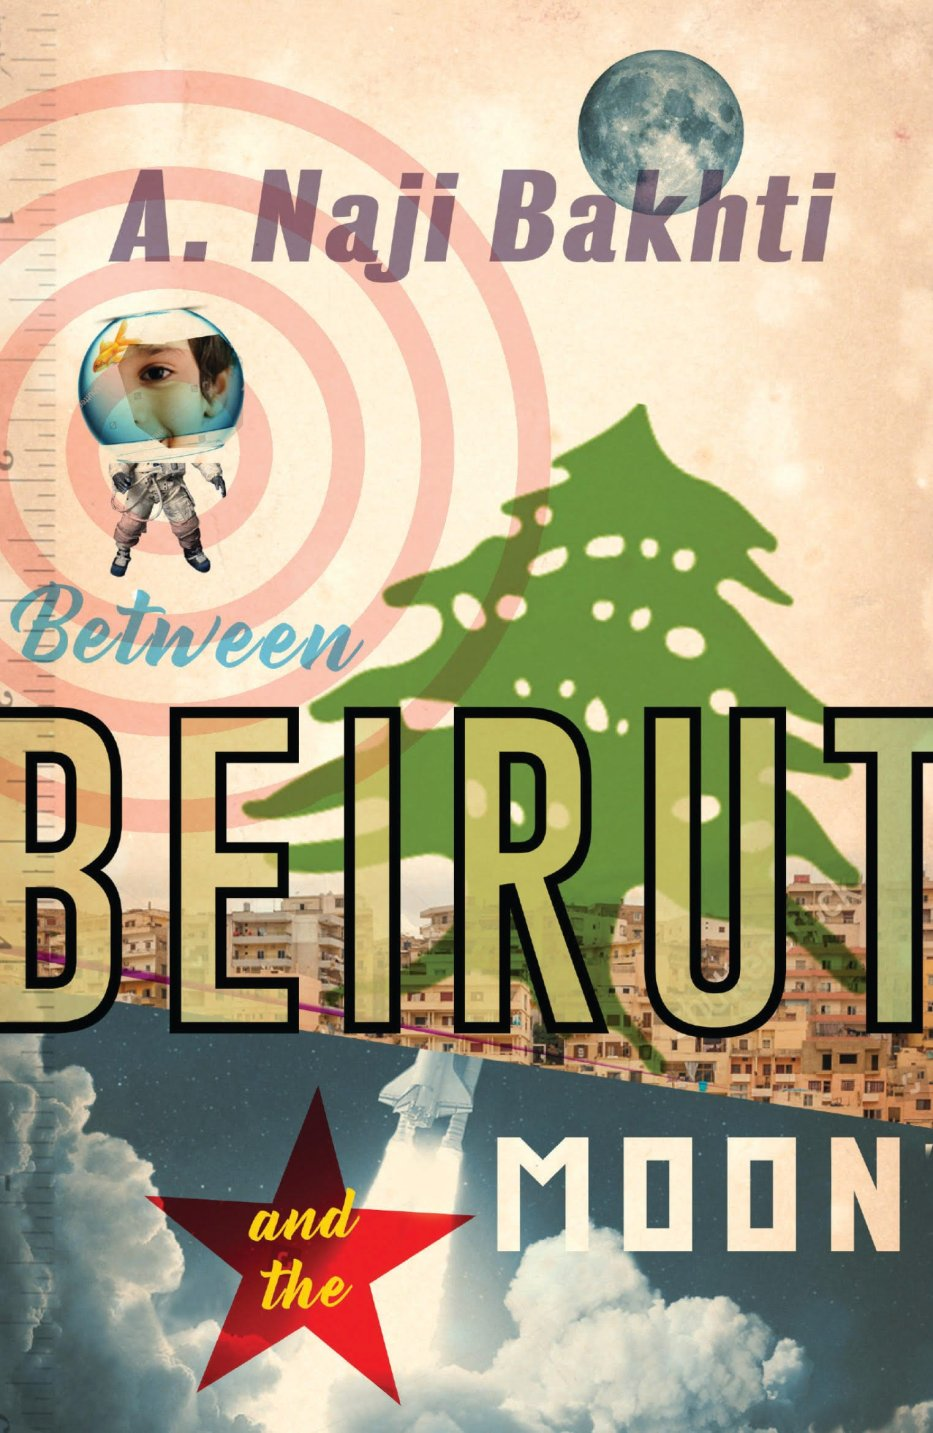 Between Beirut and the Moon book cover [Influx Press]